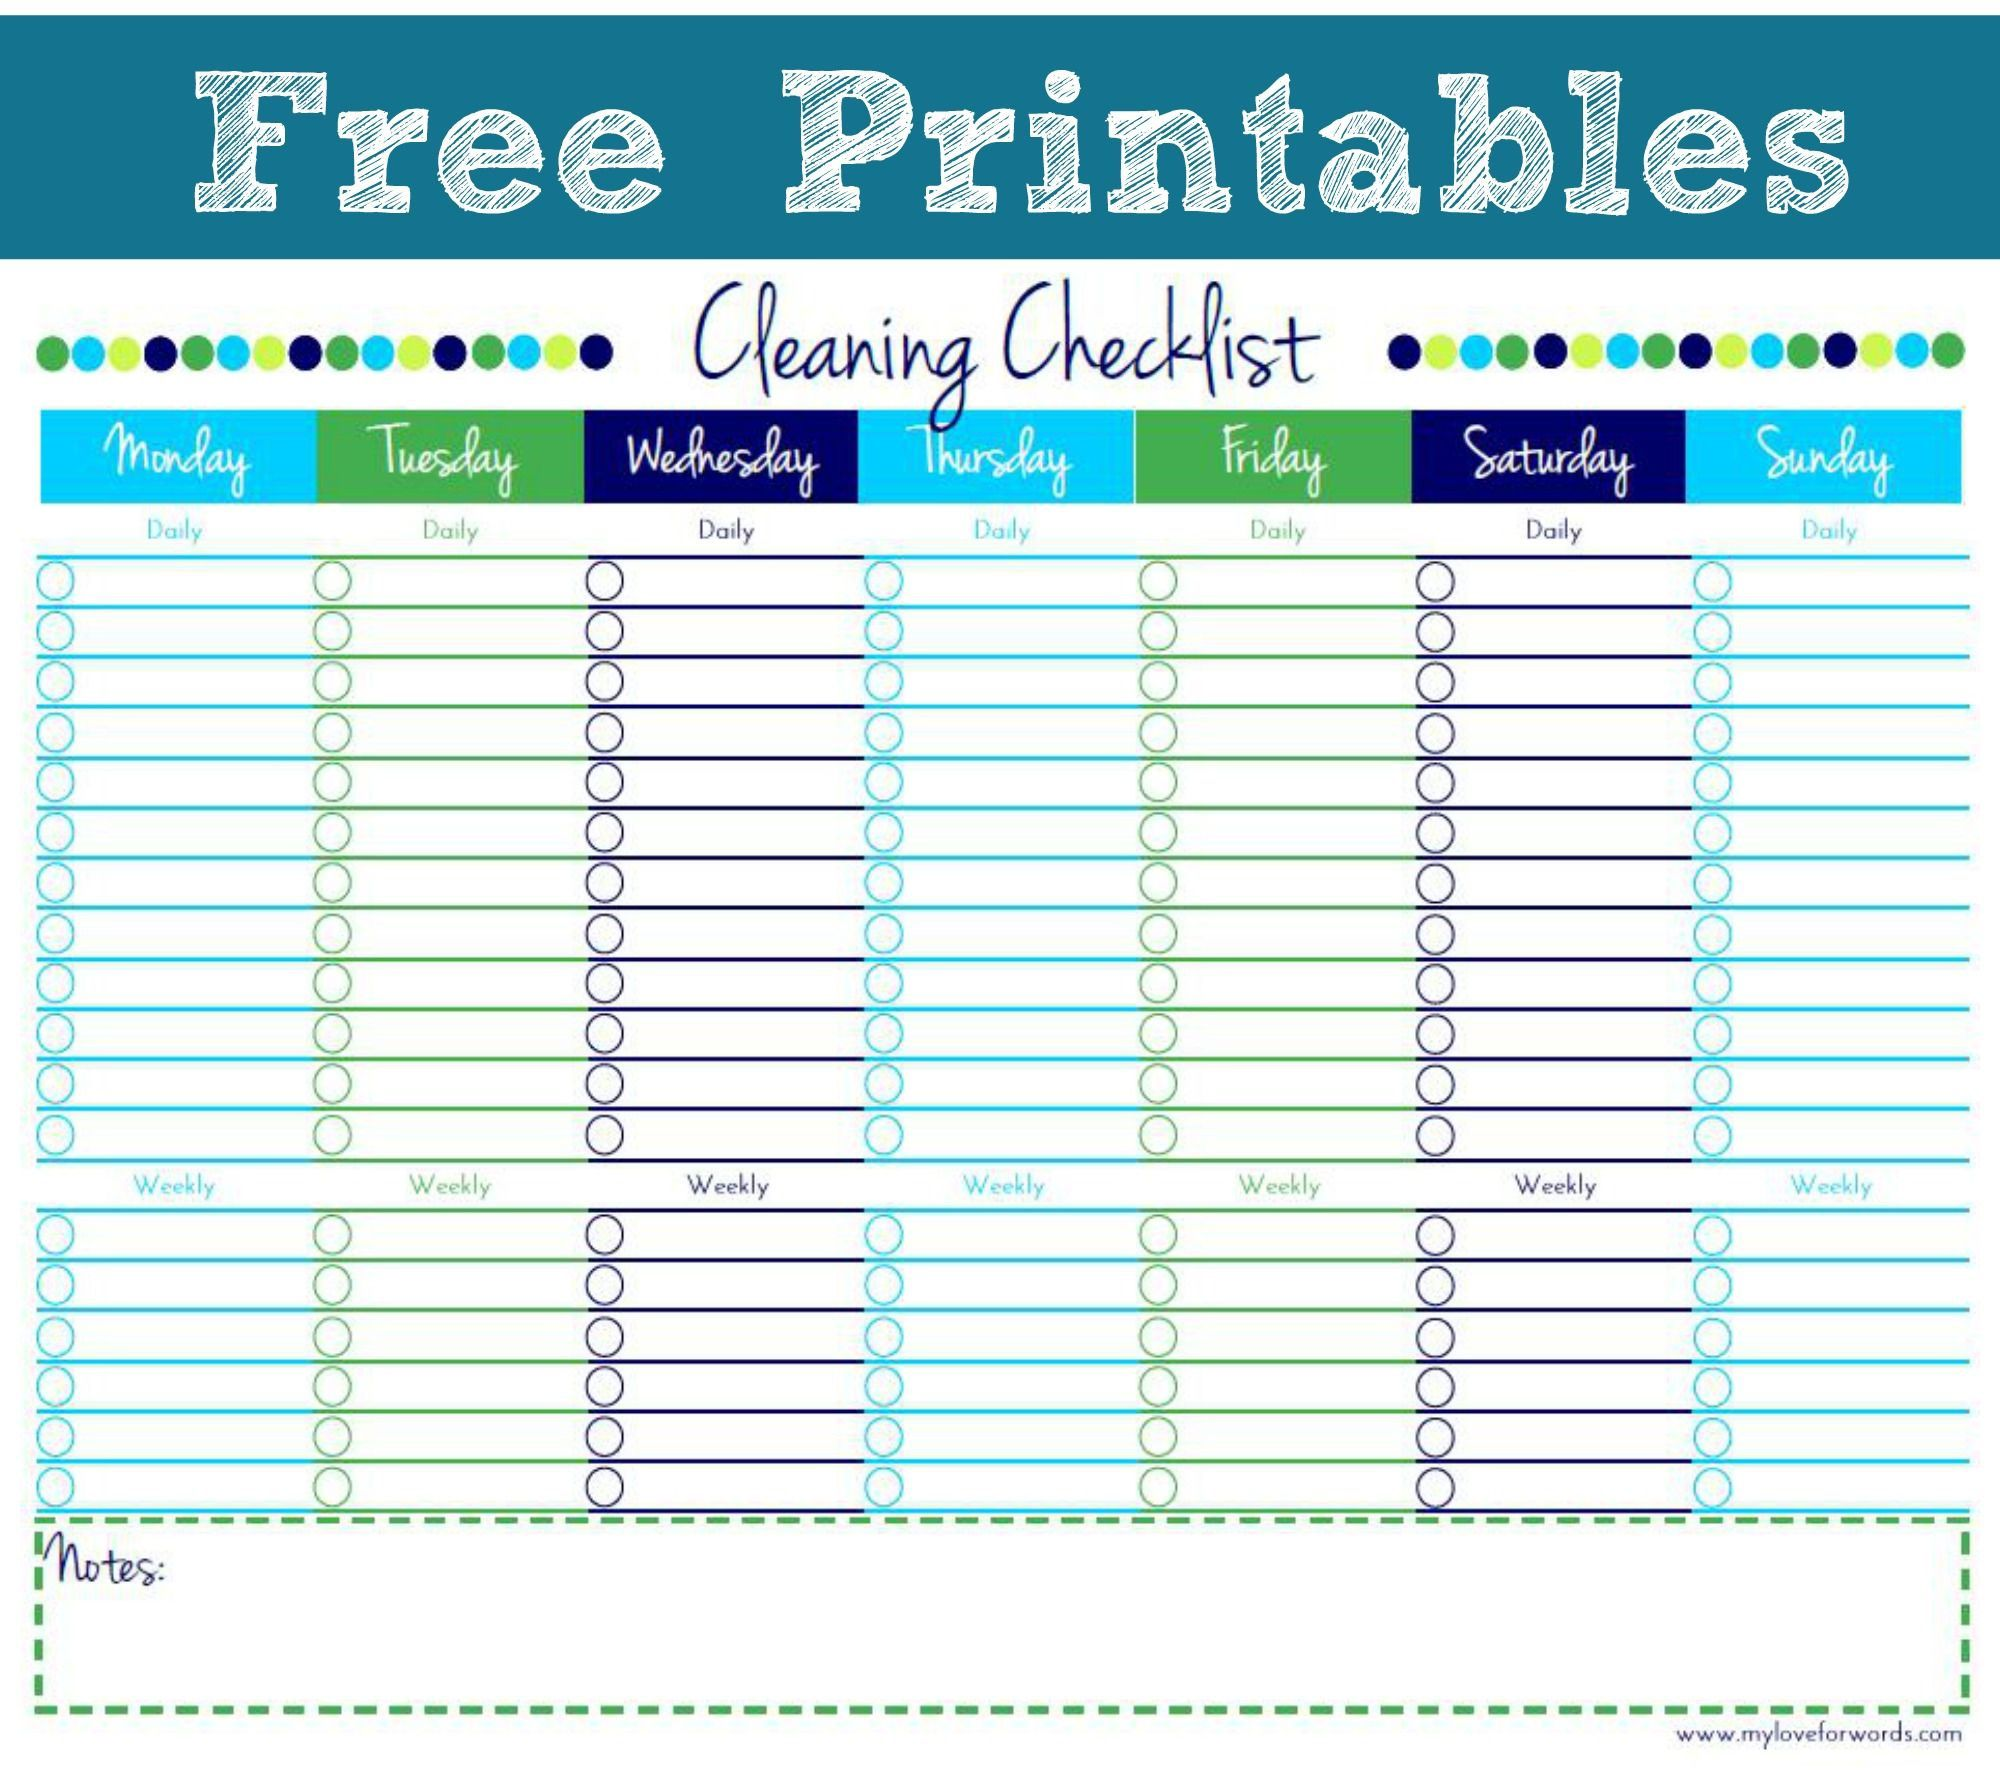 001 Remarkable Free Printable Weekly Cleaning Schedule Template Photo  OfficeFull